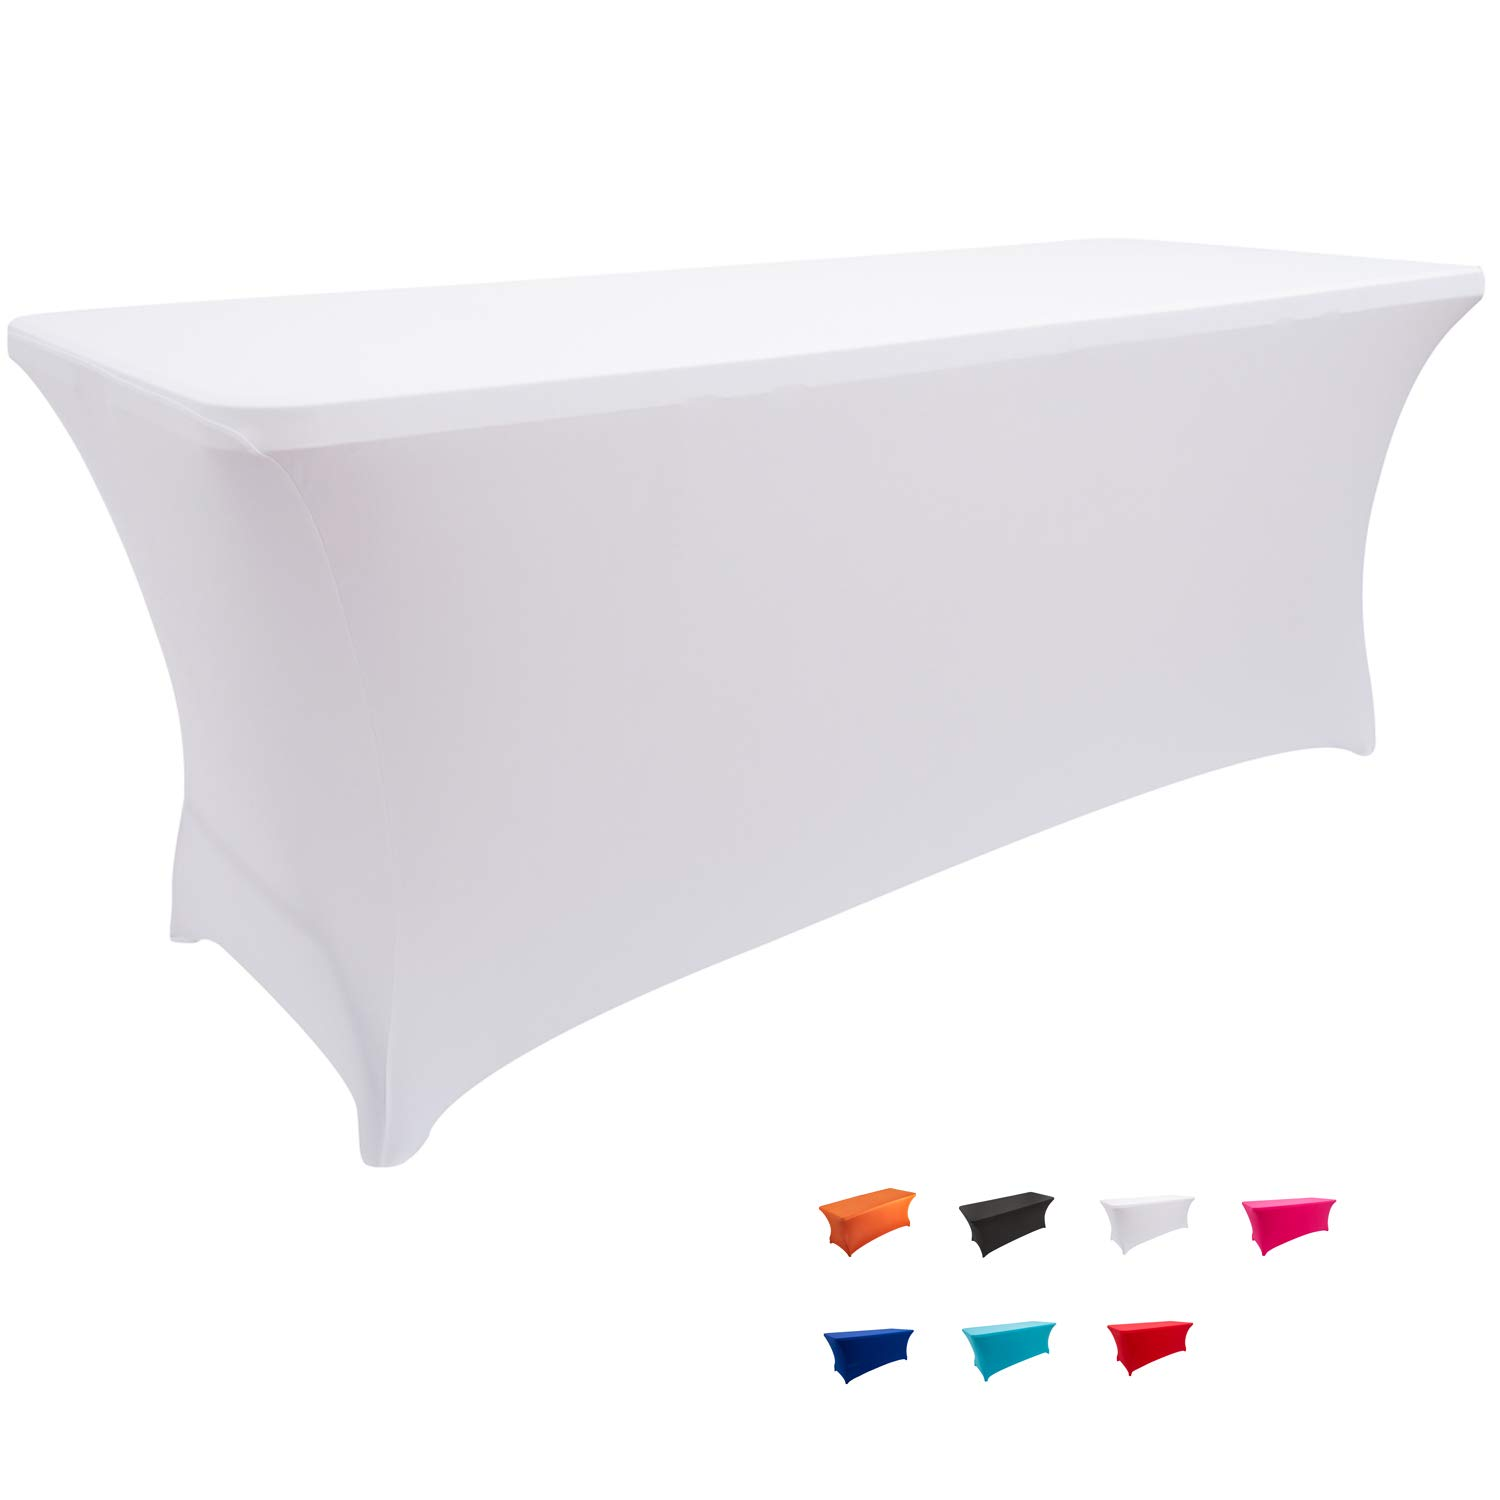 FELIZEST Spandex Table Covers, 6 ft/4 ft Spandex Table Cloth, Rectangular Stretch Table Cover for Folding Table (6ft, White)